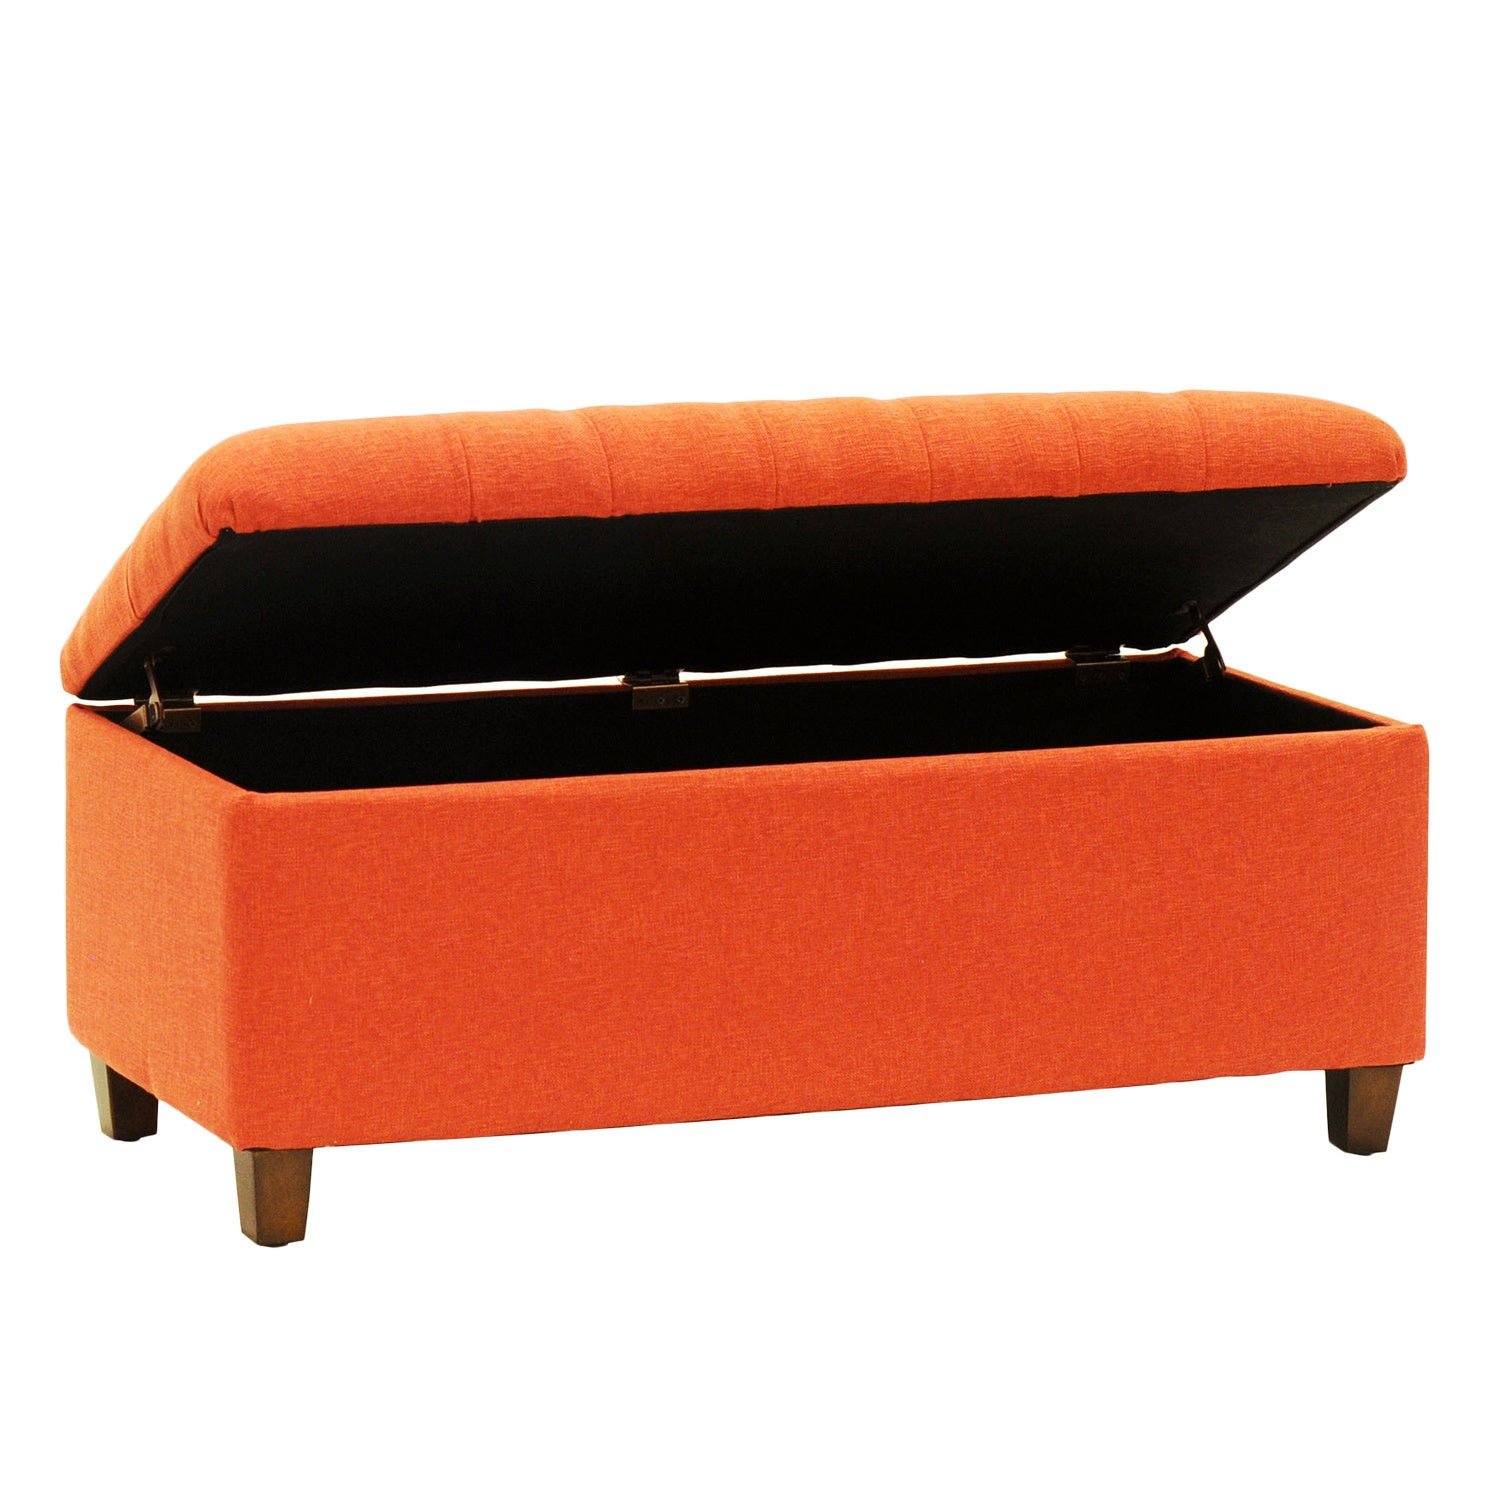 Charmant Shop HomePop Cranberry Red Linen Tufted Storage Bench   On Sale   Free  Shipping Today   Overstock.com   8900239